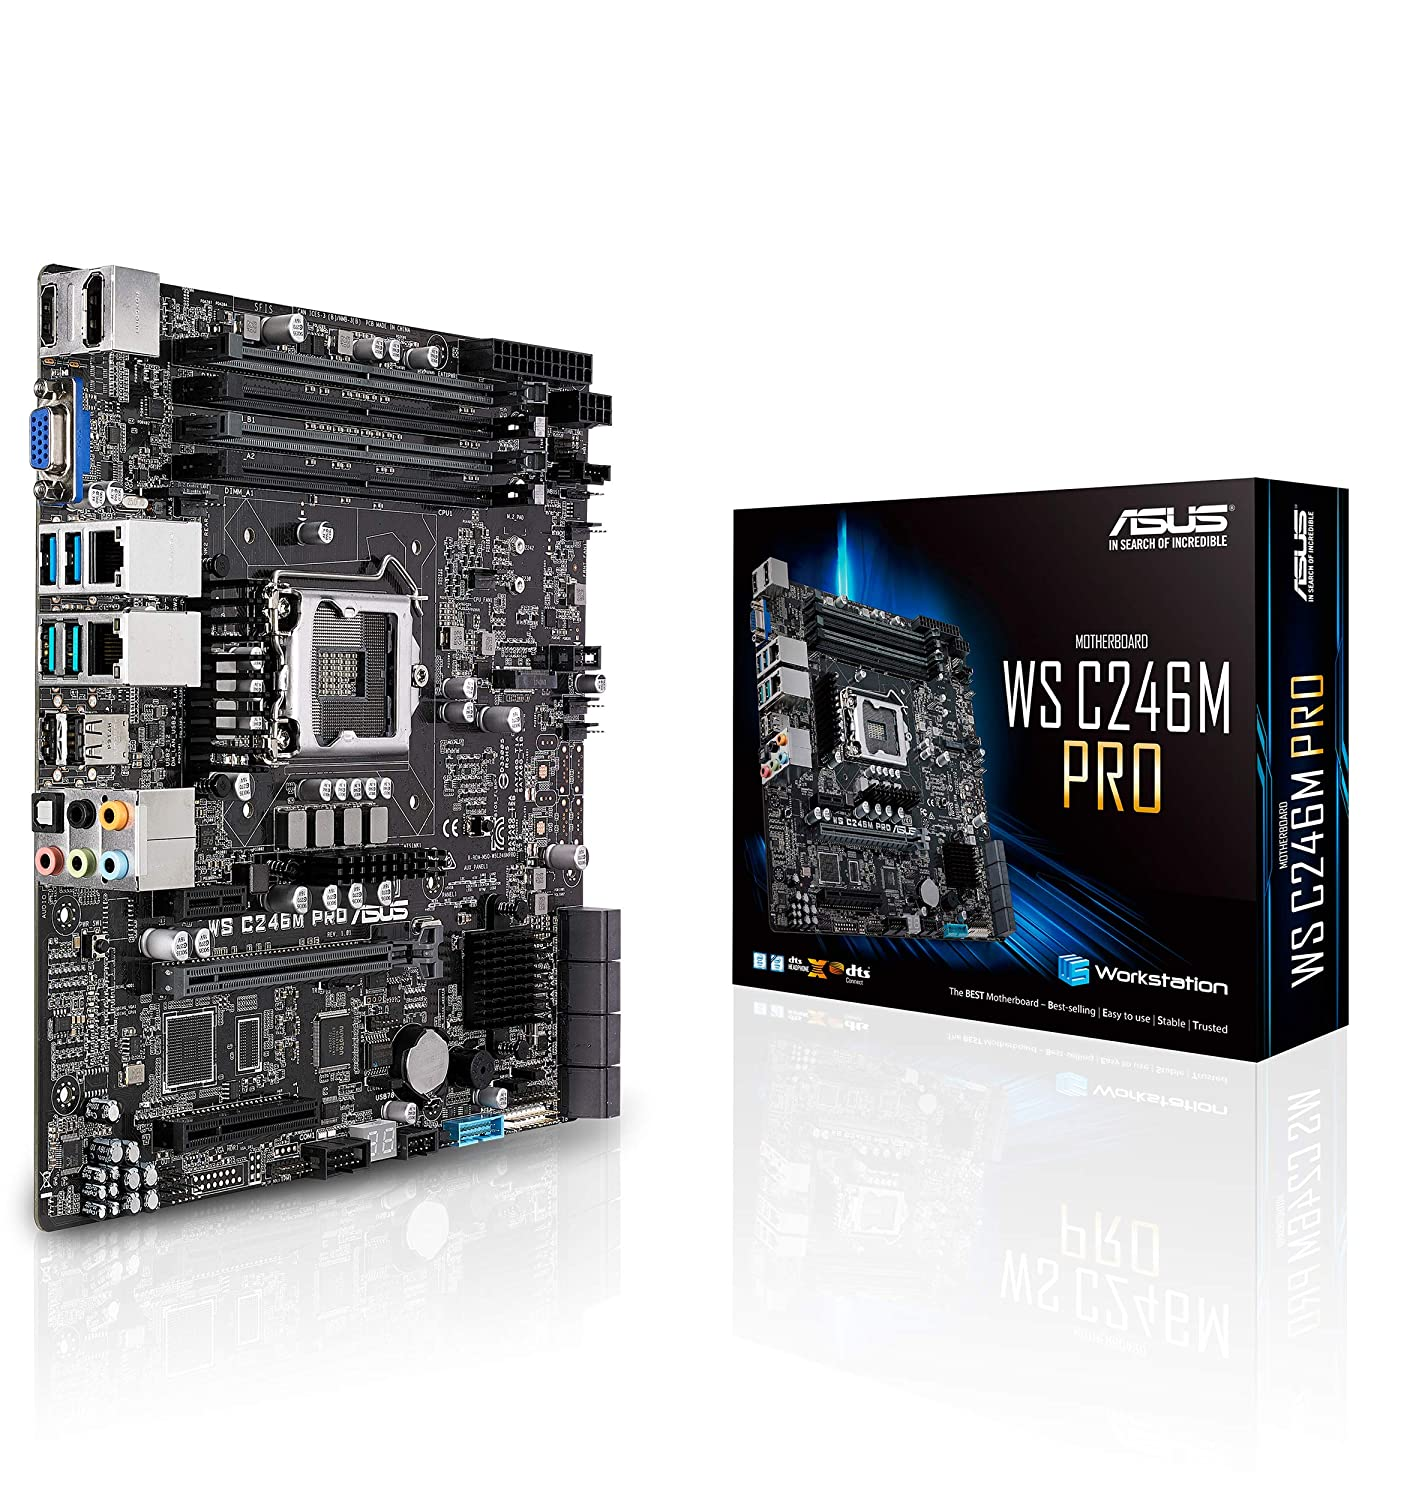 ASUS A8V PROMISE CONTROLLER DRIVER